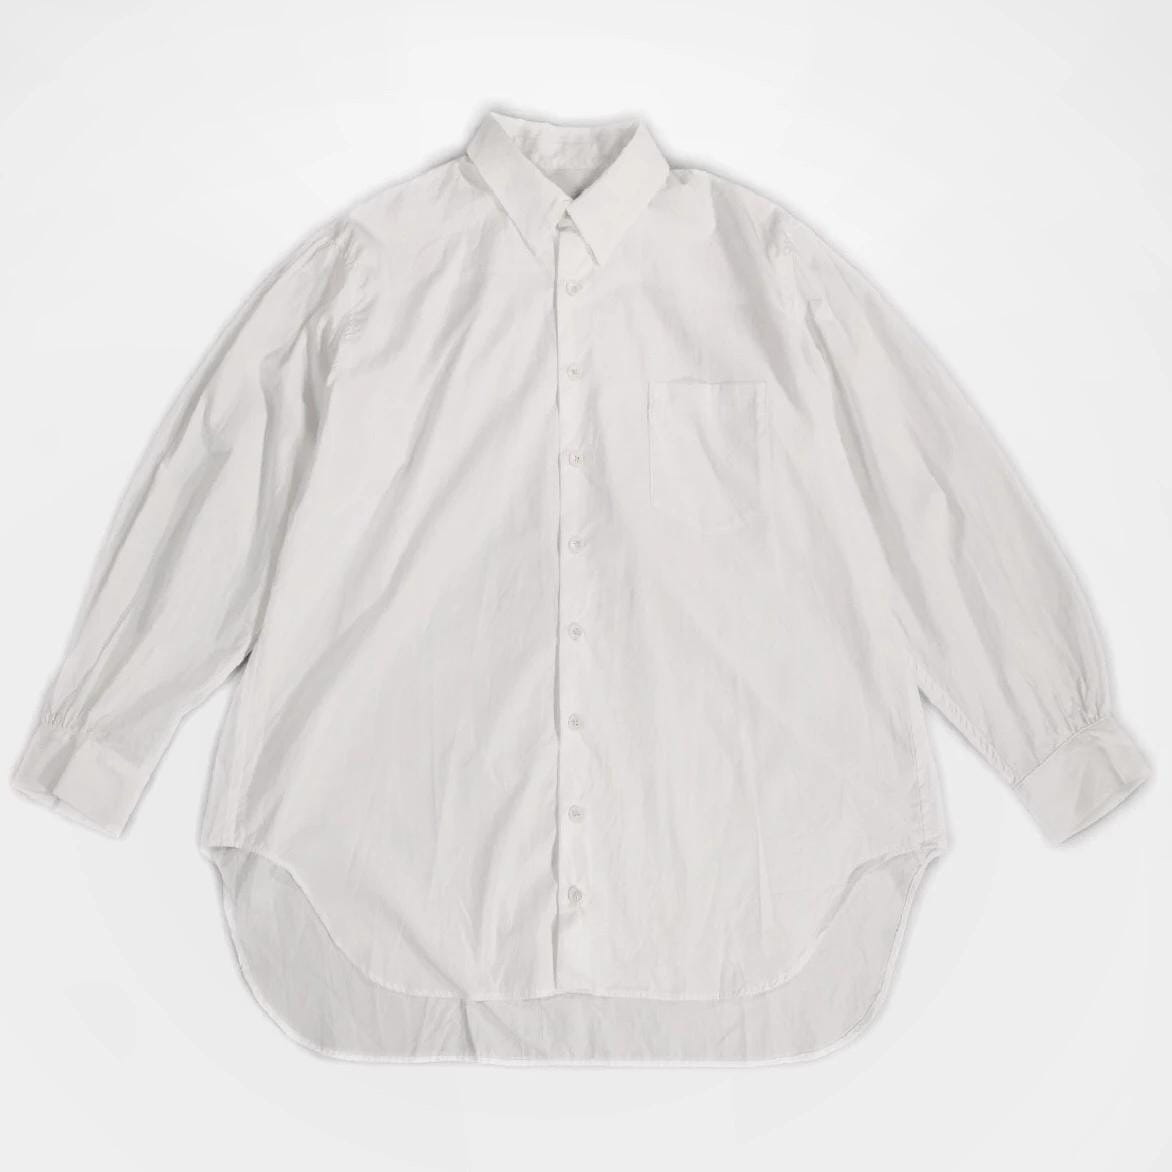 YUTA MATSUOKA,POINT COLLAR WHITE SHIRT,medium rare online